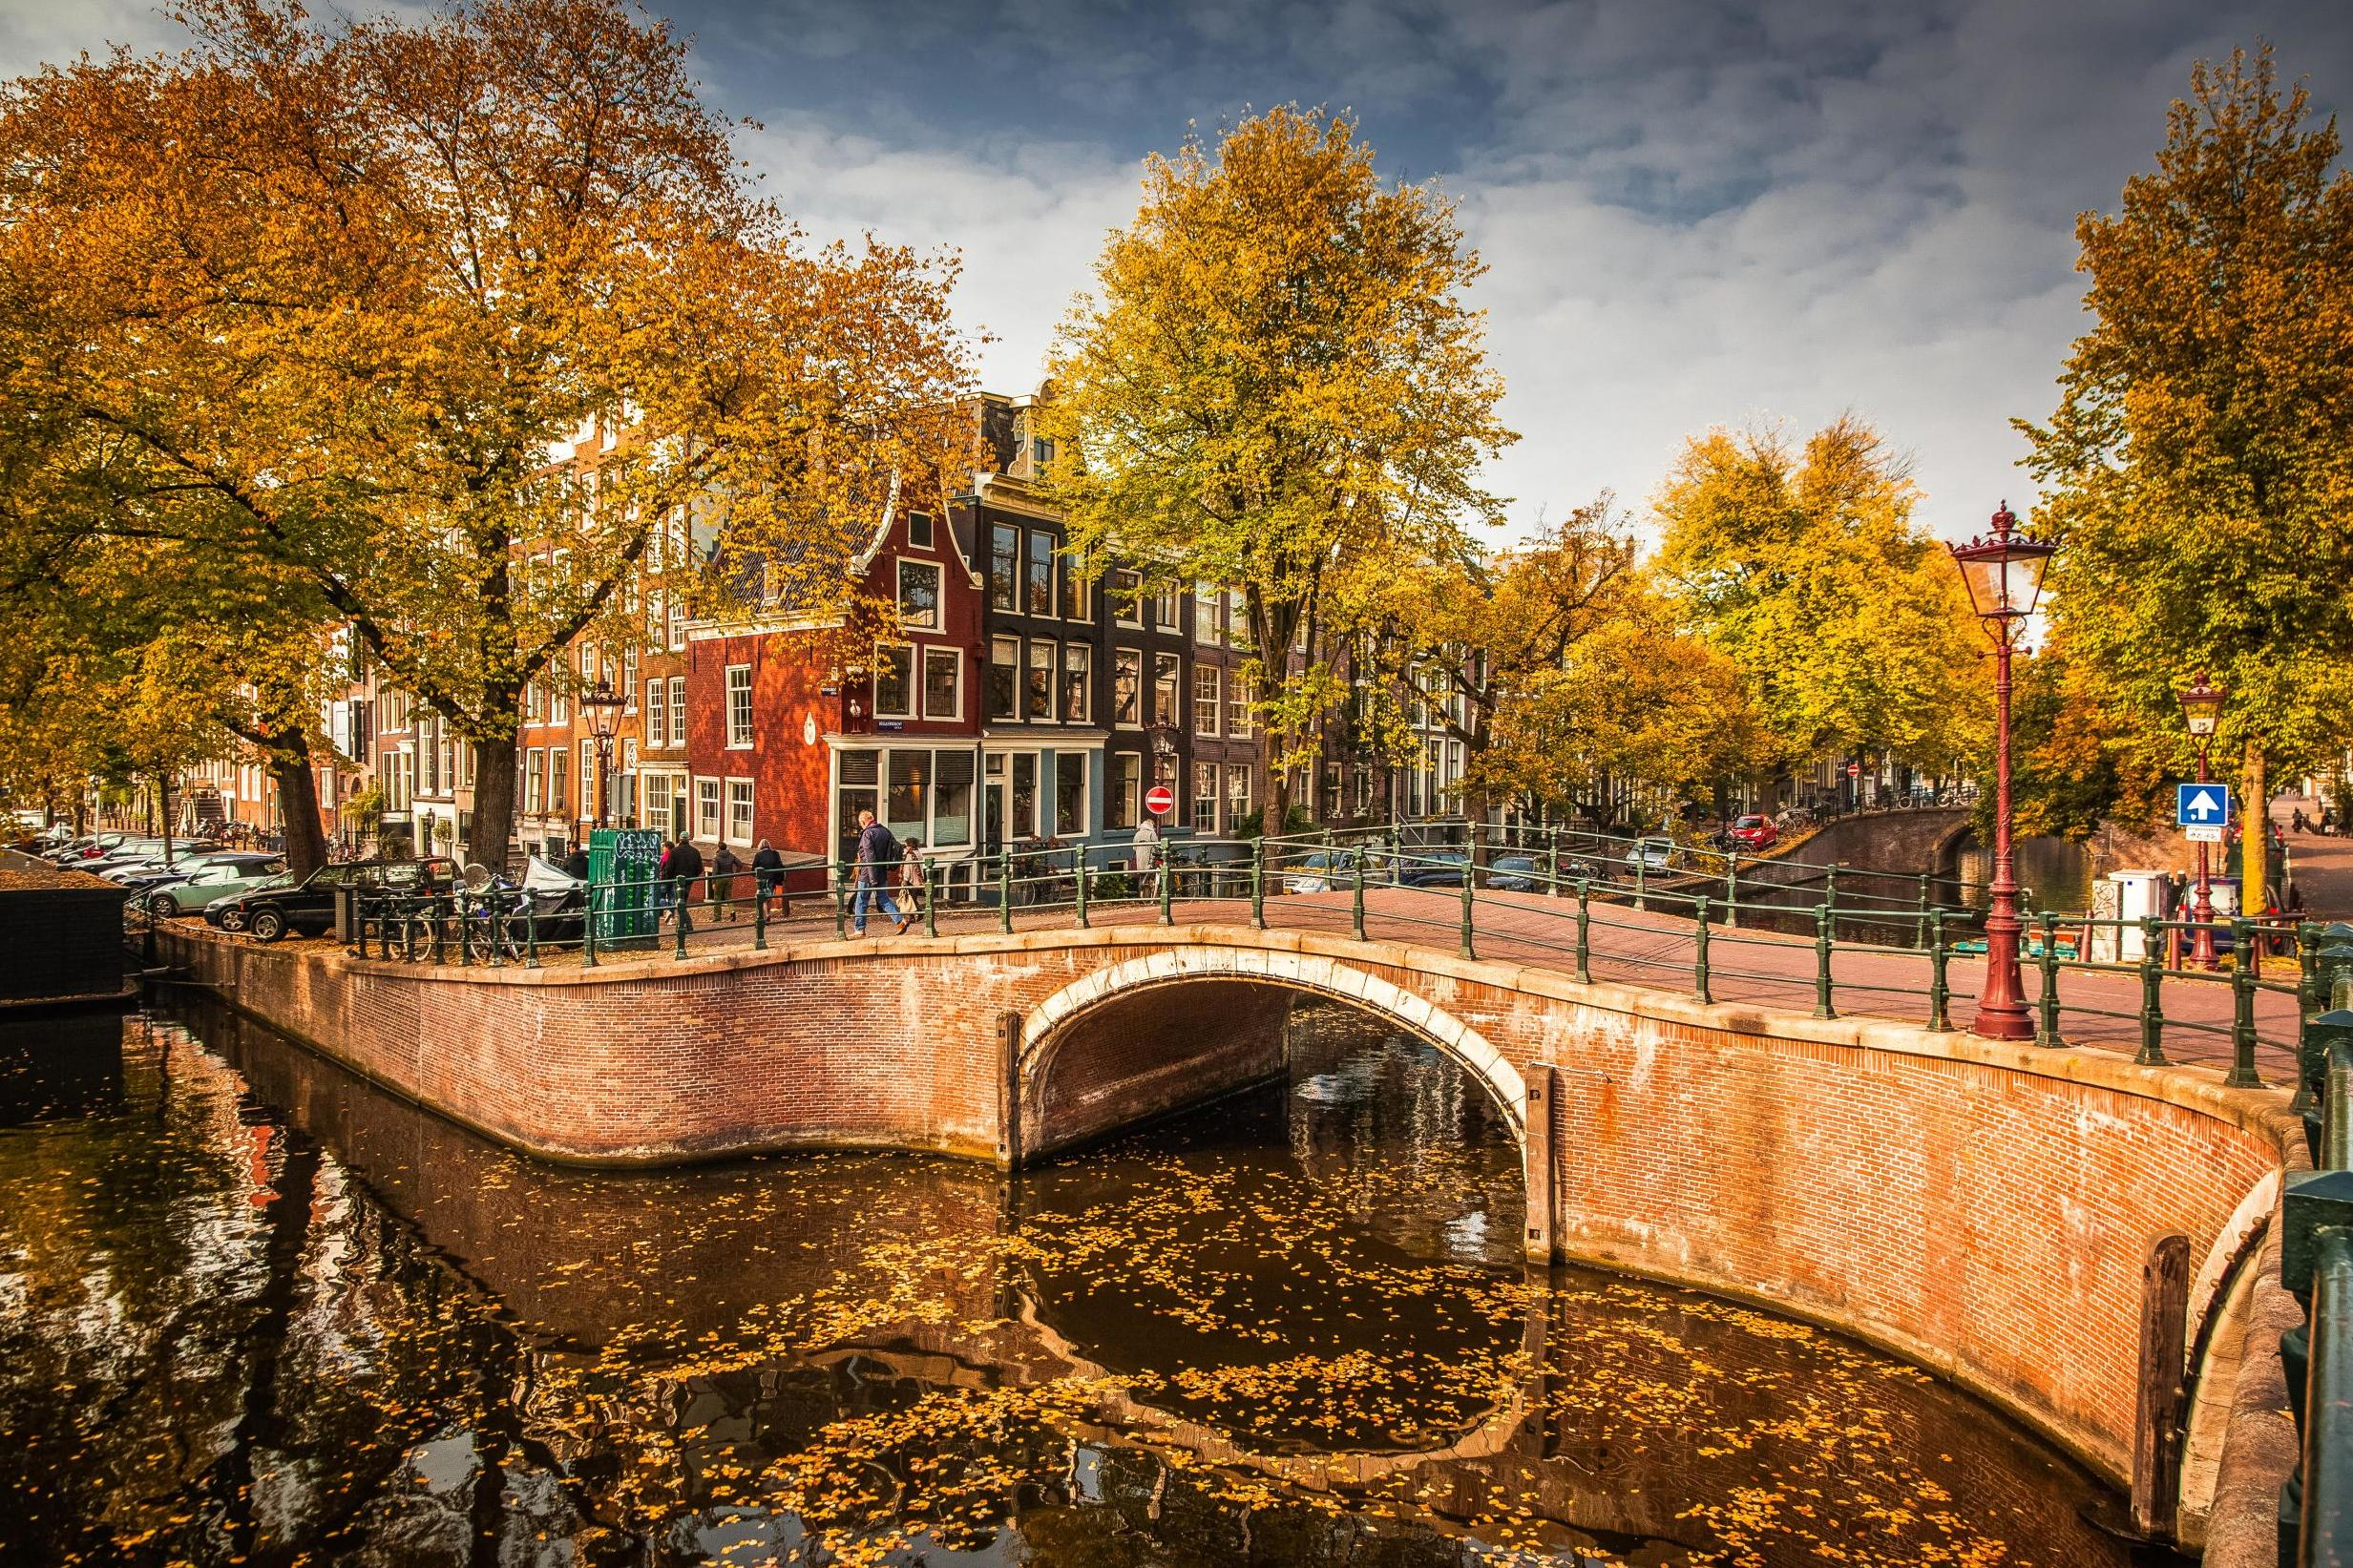 The best places to visit in the Netherlands